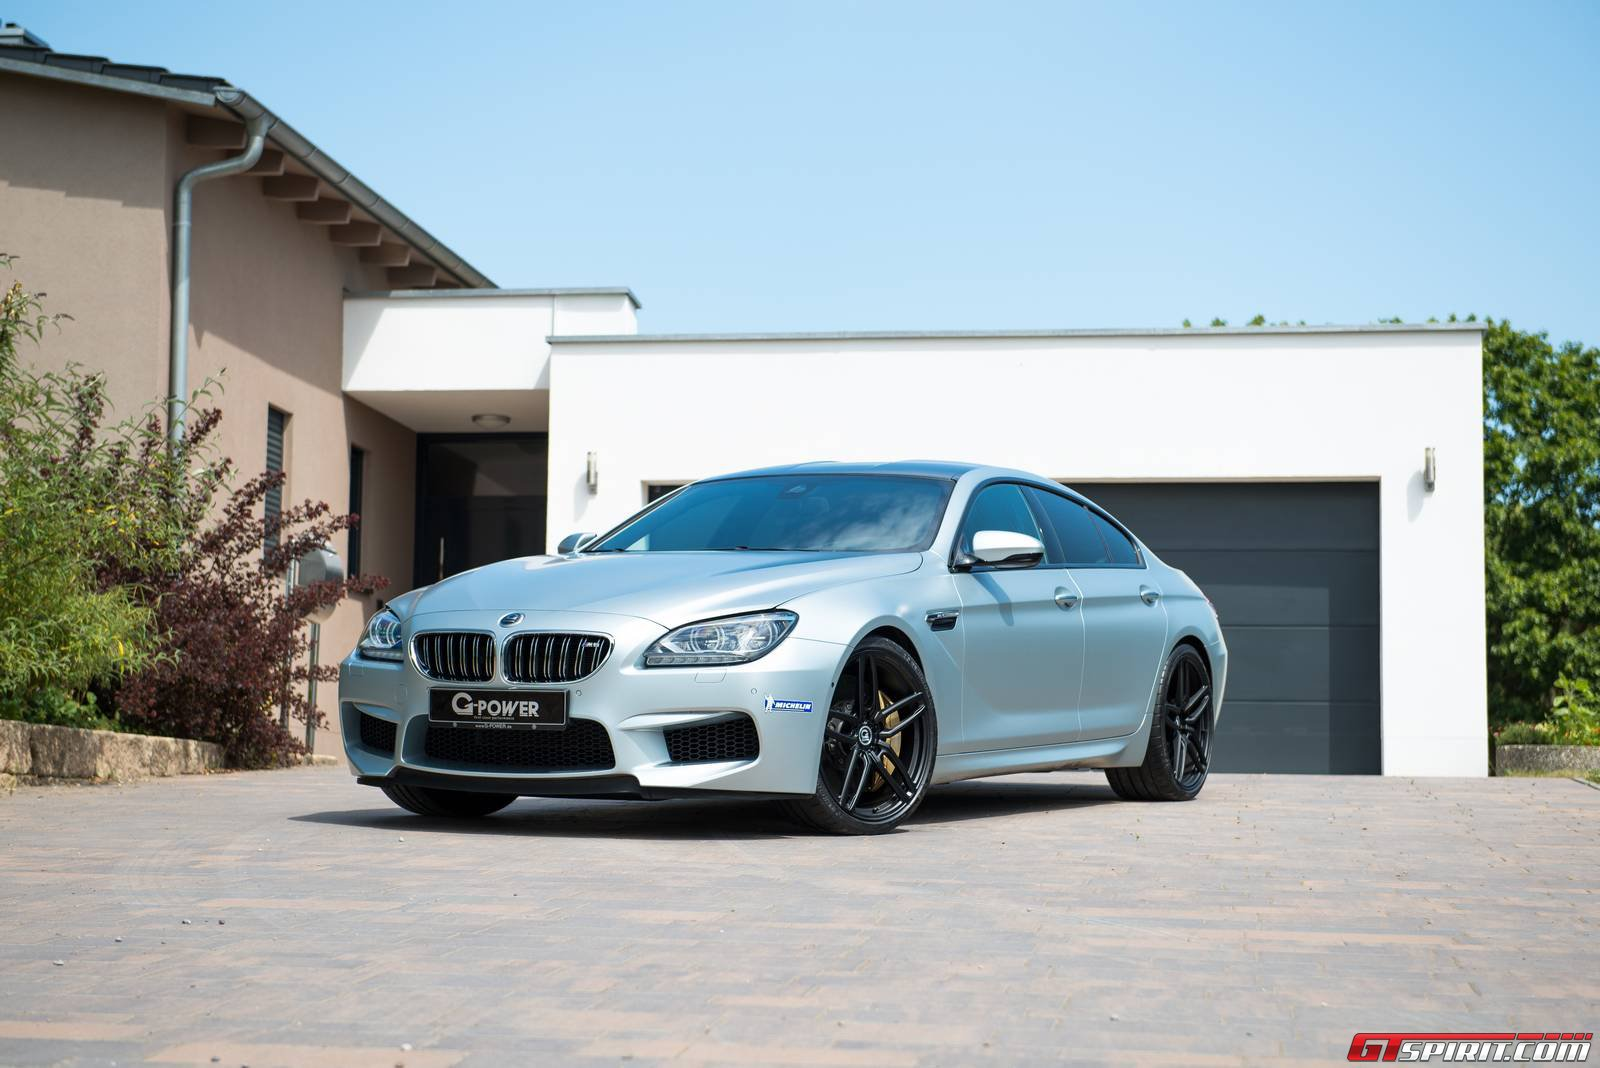 Official 740hp G Power BMW M6 Gran Coupe